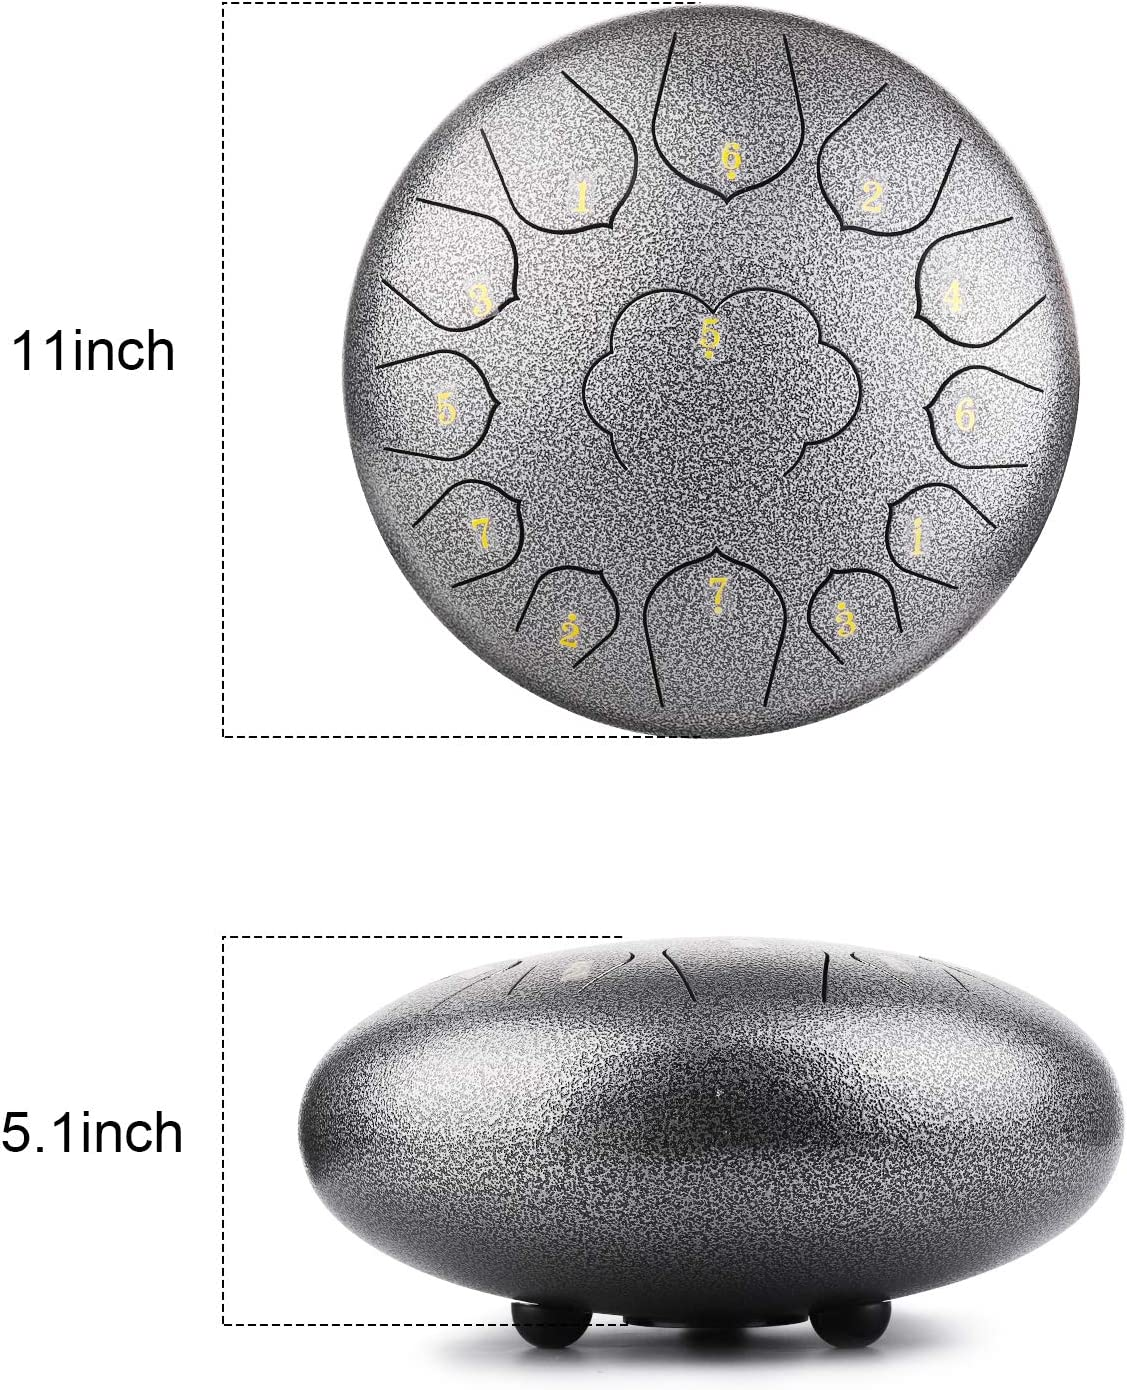 Steel Tongue Drum 13 Notes 12 Inch Percussion Instrument C-Key Handpan Drum With Bag,Couple of Mallets,for Musical Education Concert Mind Healing Yoga